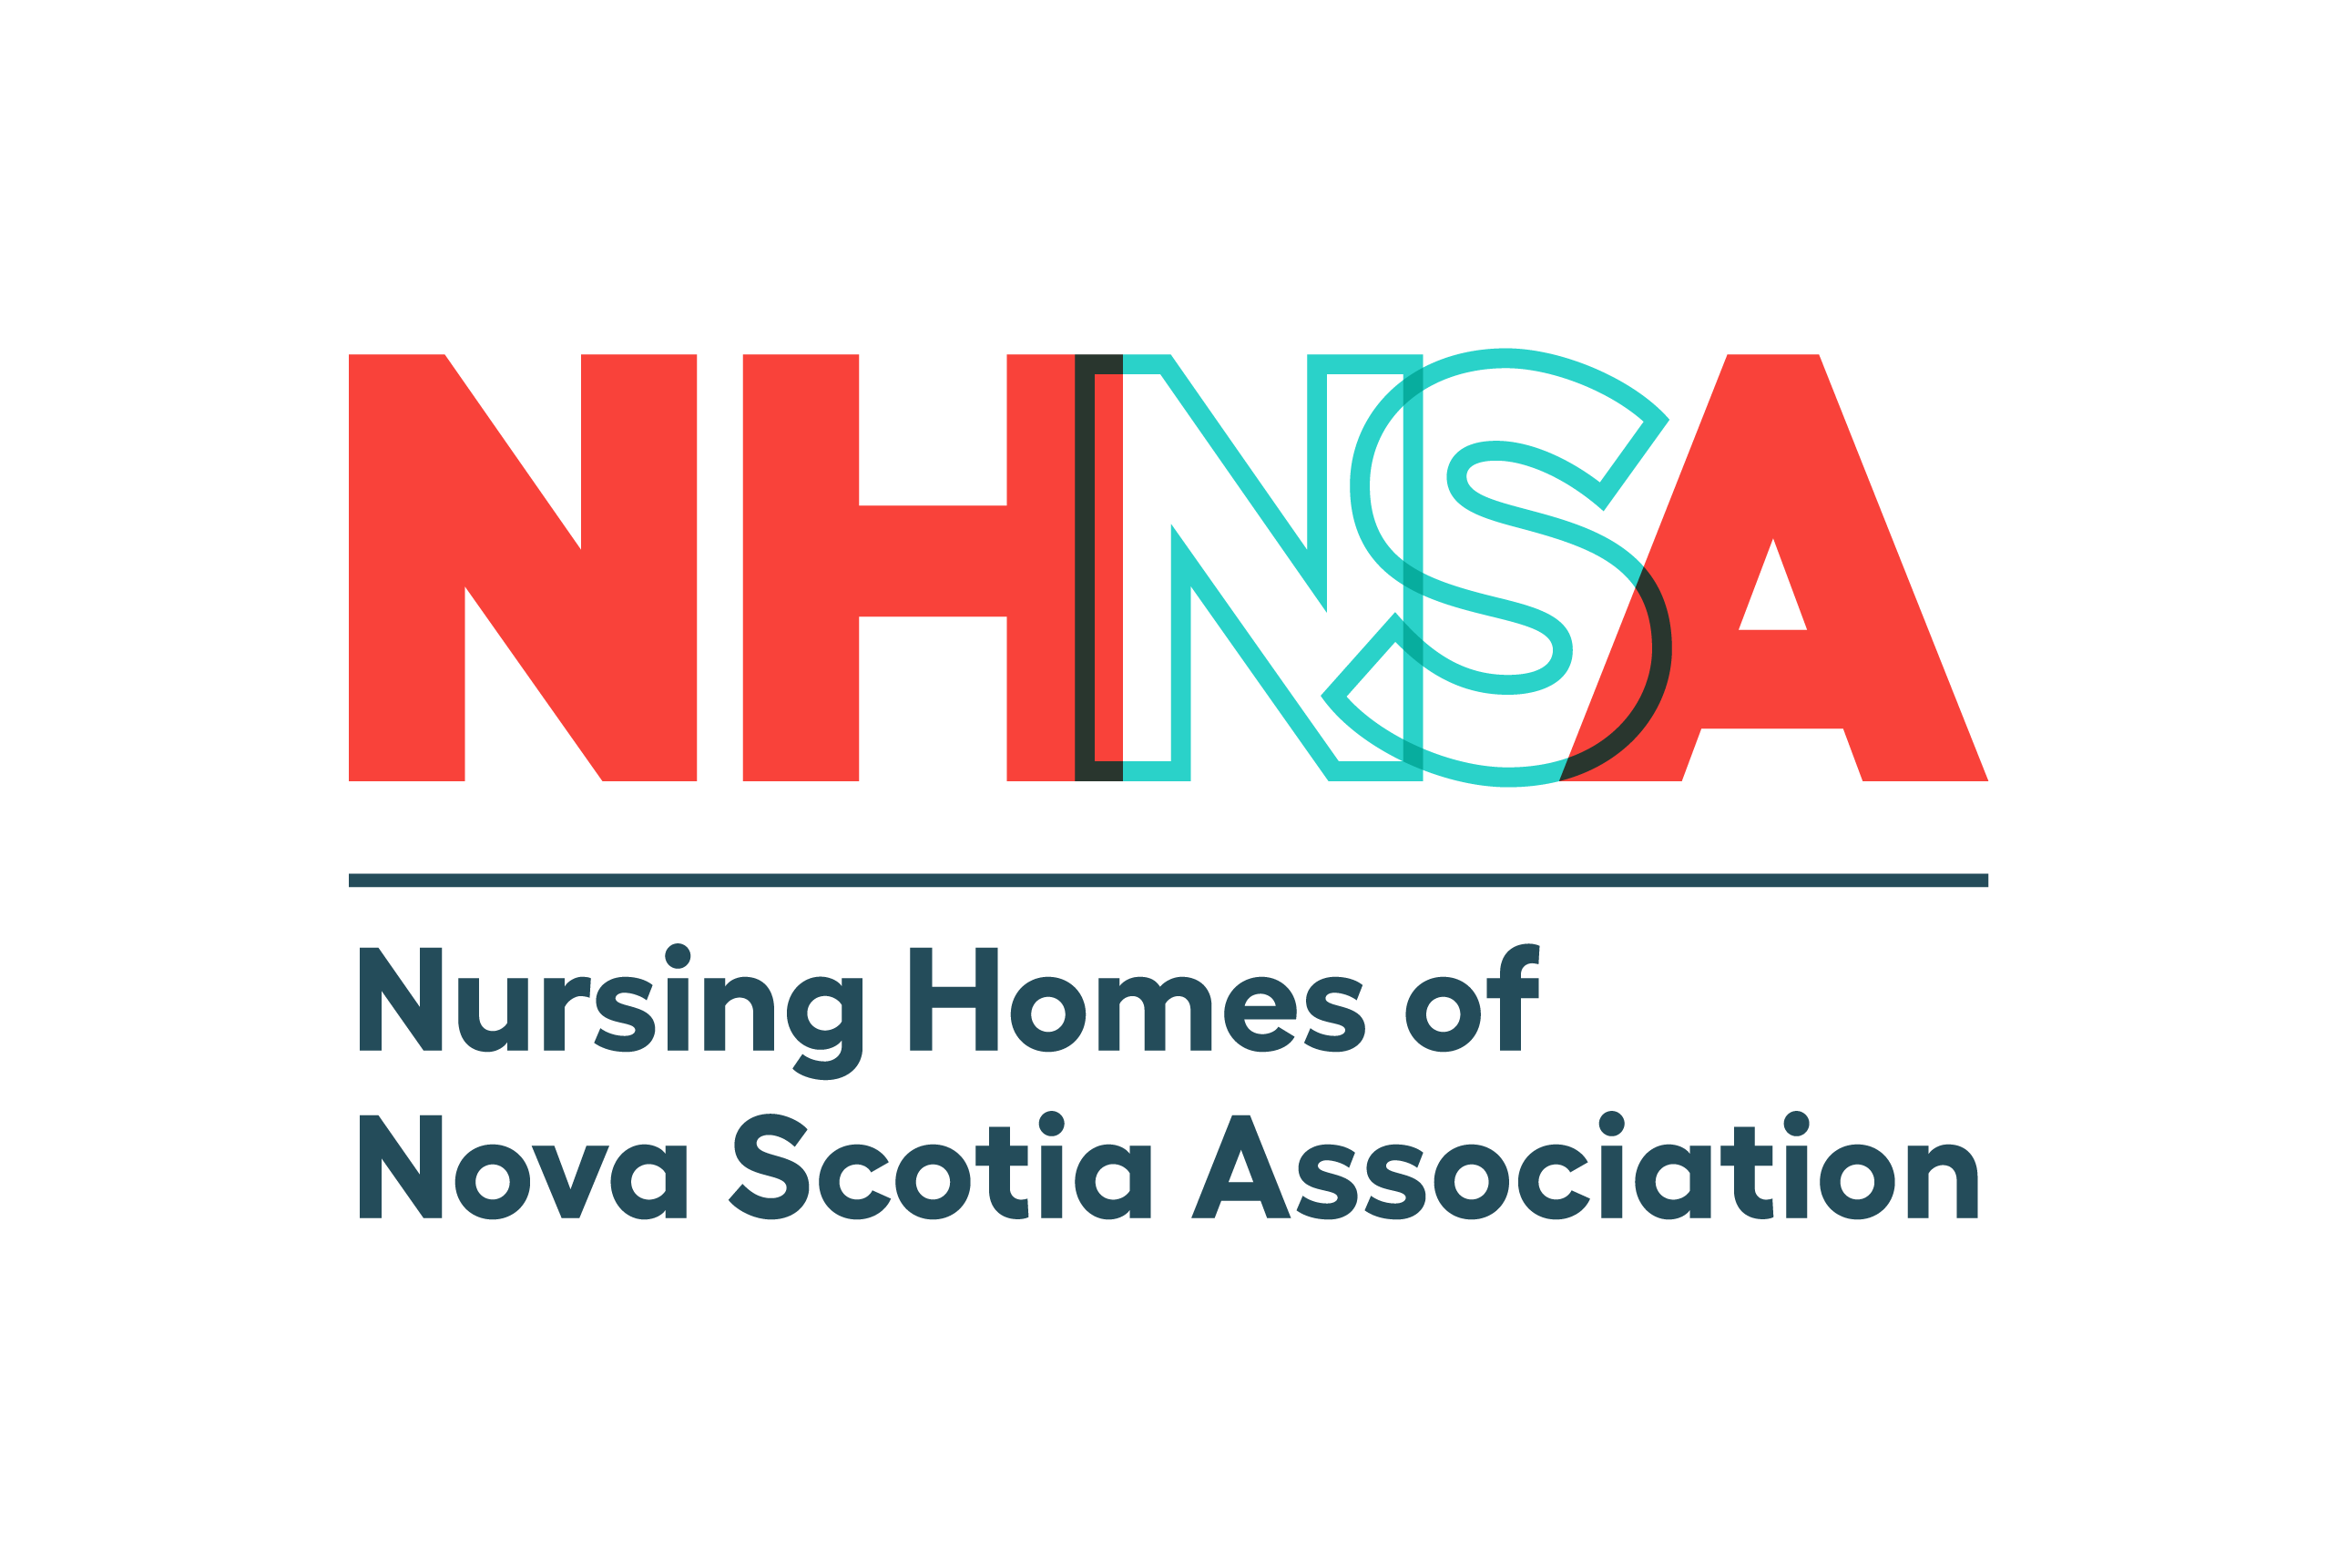 NHNSA - Nursing Homes of Nova Scotia Association